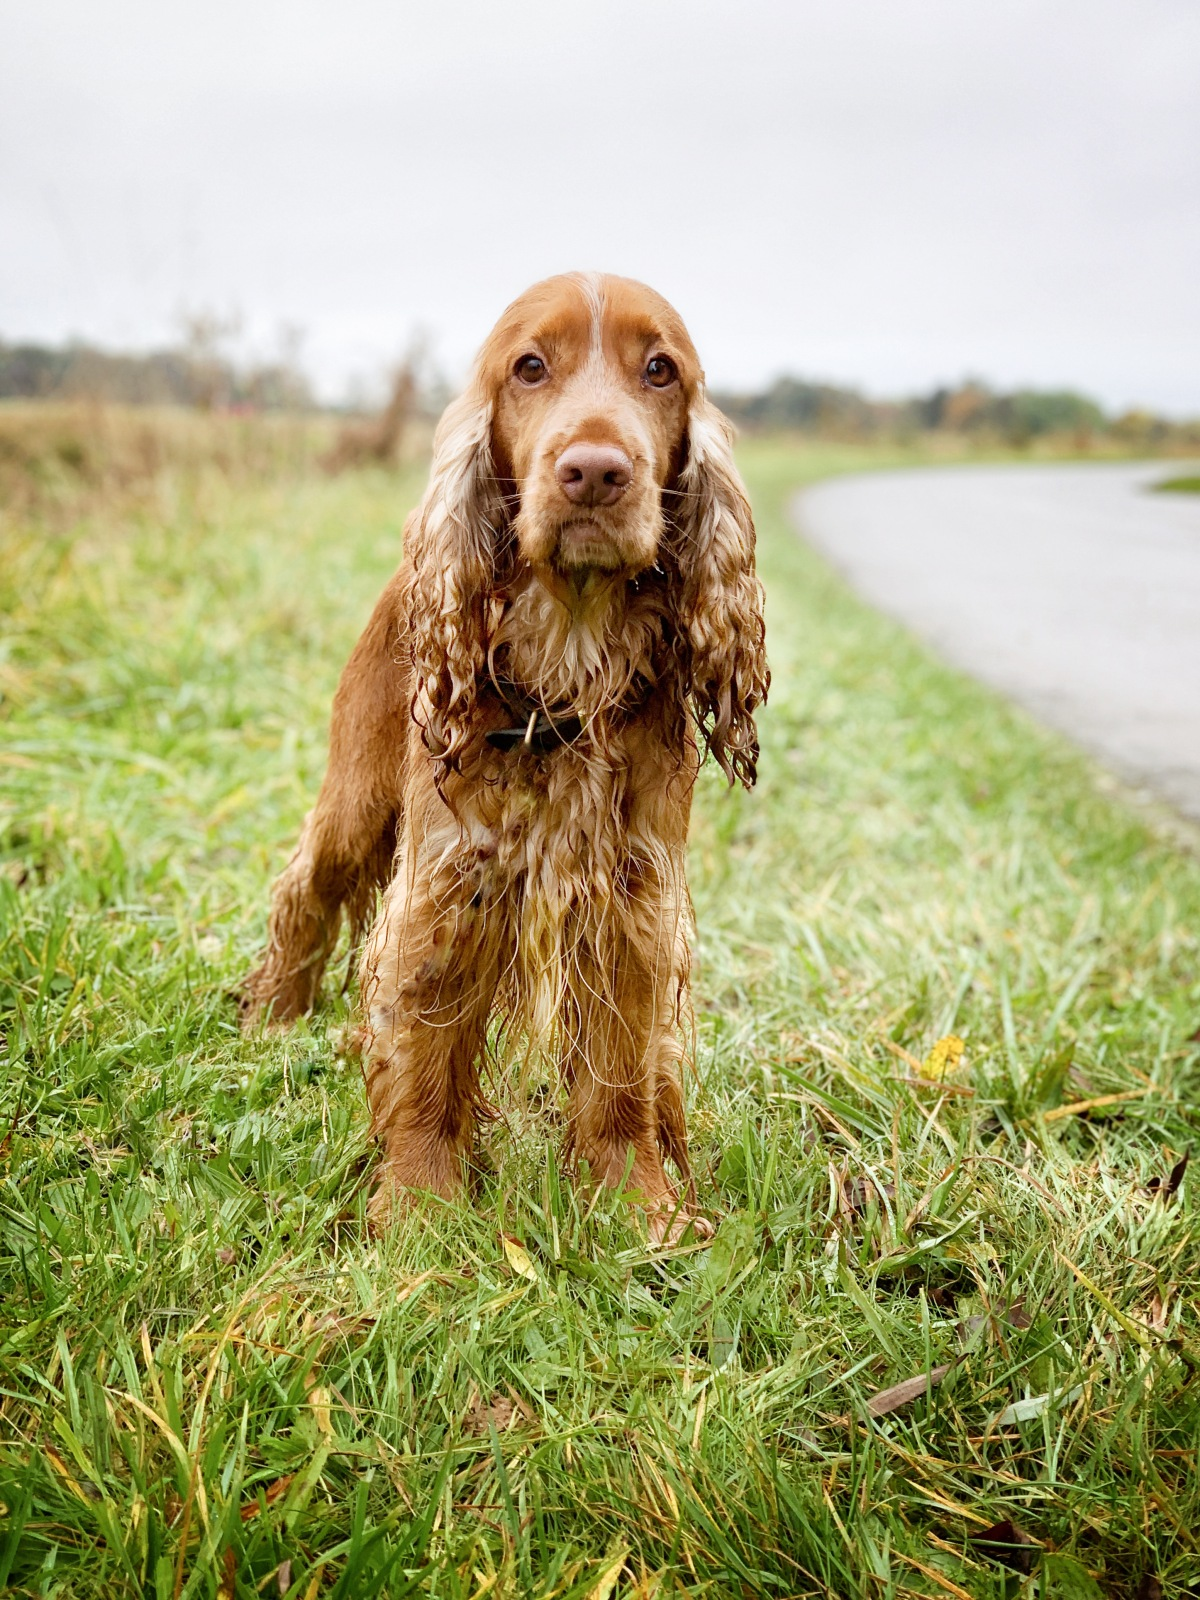 what to do with cocker spaniel dog when the weather is bad and rainy / indoor puzzle games for dogs ideas / puppy tips / all about English cocker spaniel training and keeping calm / Perfect cocker spaniel book and blog / (C) Natalia Ashton